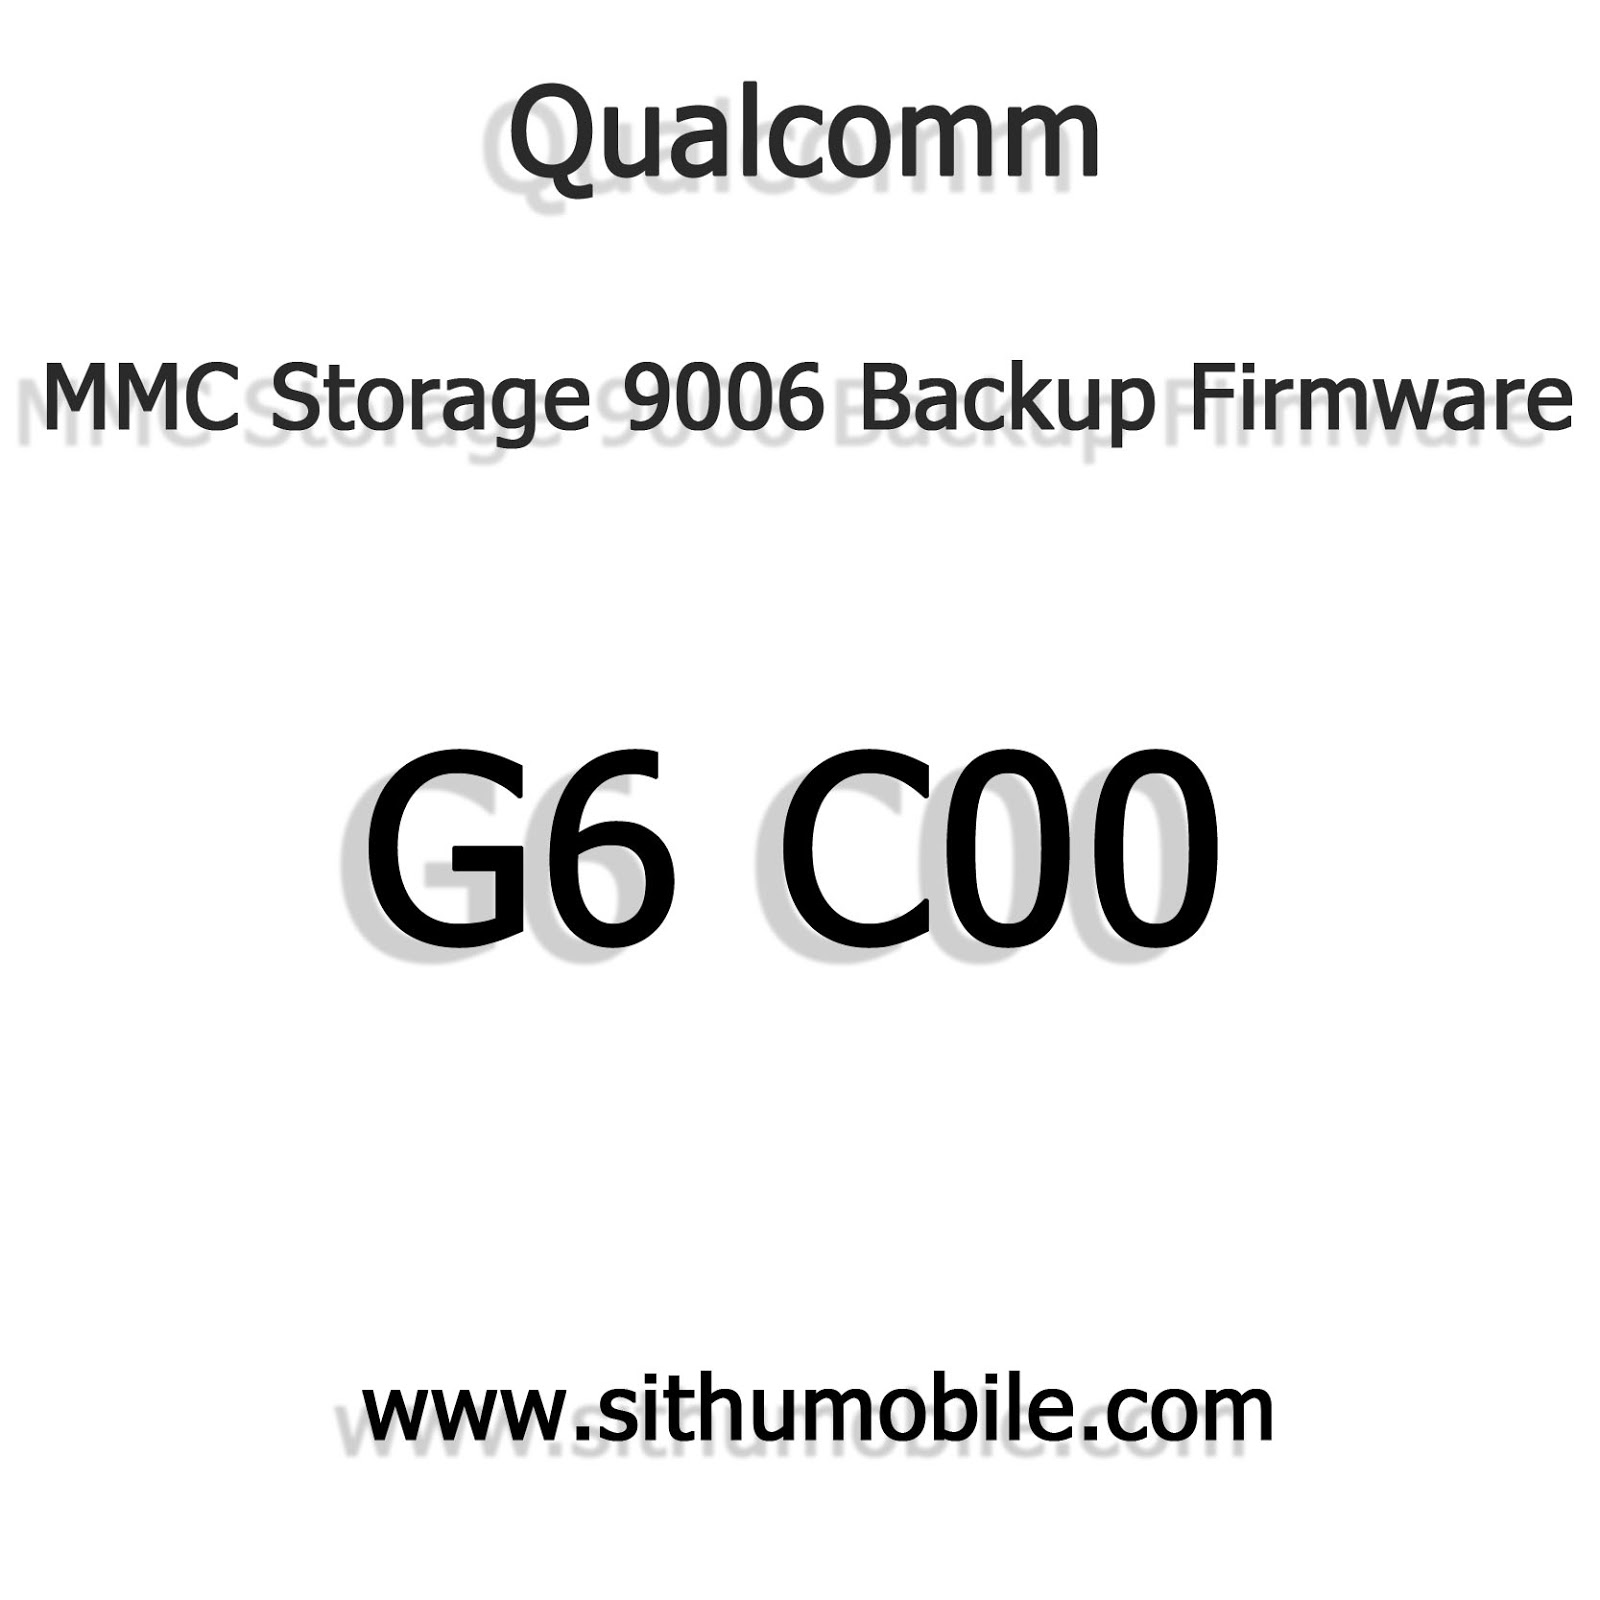 g6 c00 mmc storage 9006 backup firmware download